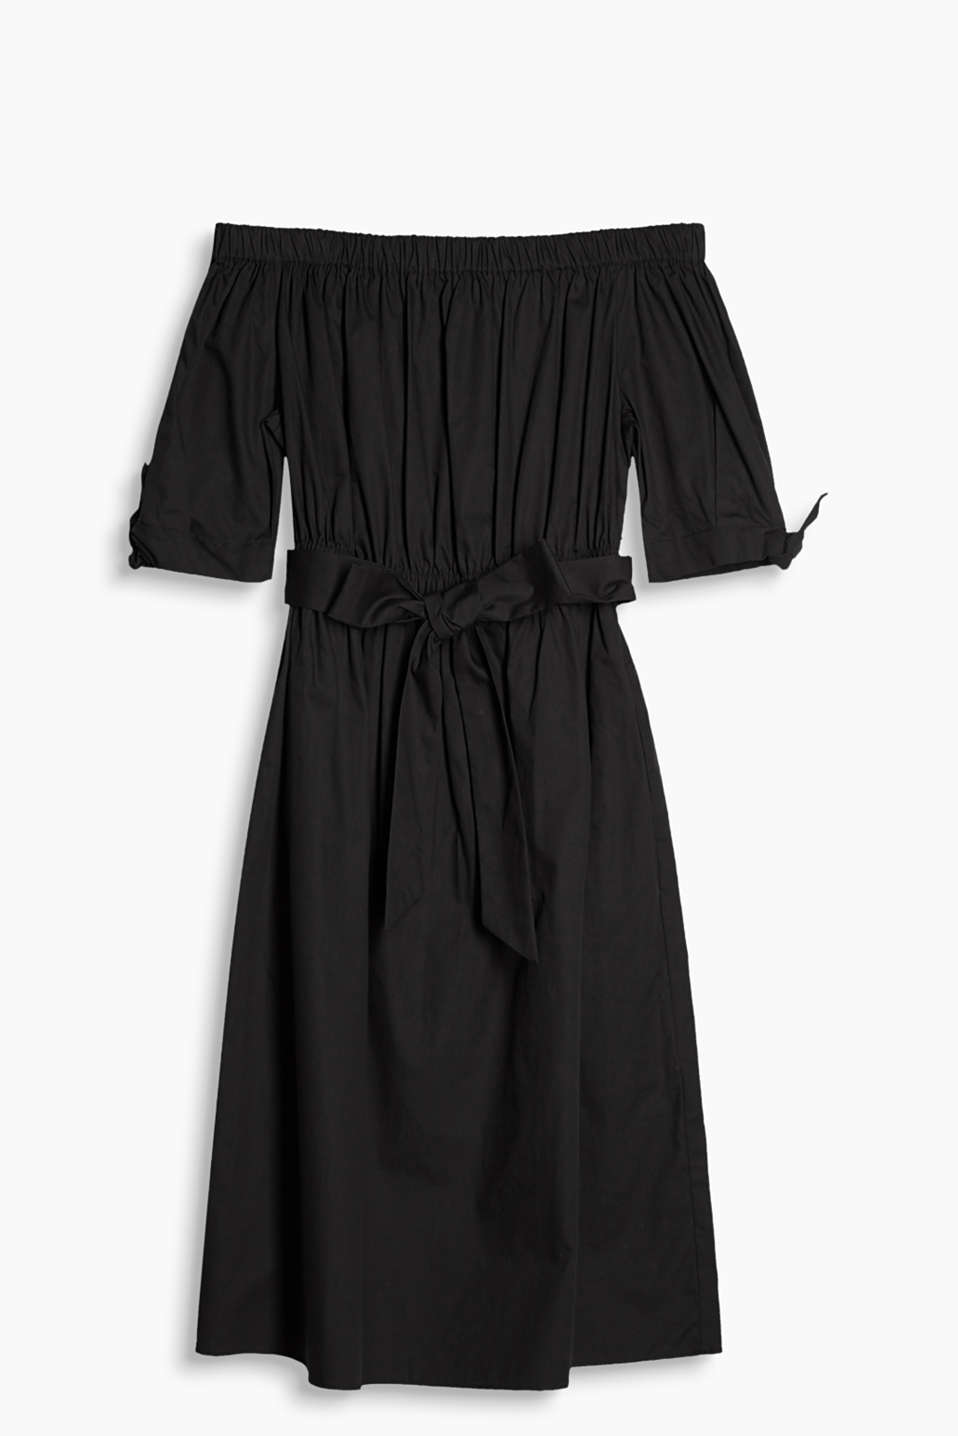 Stylish off-the-shoulder dress with bow details and a tie-around belt in 100% cotton